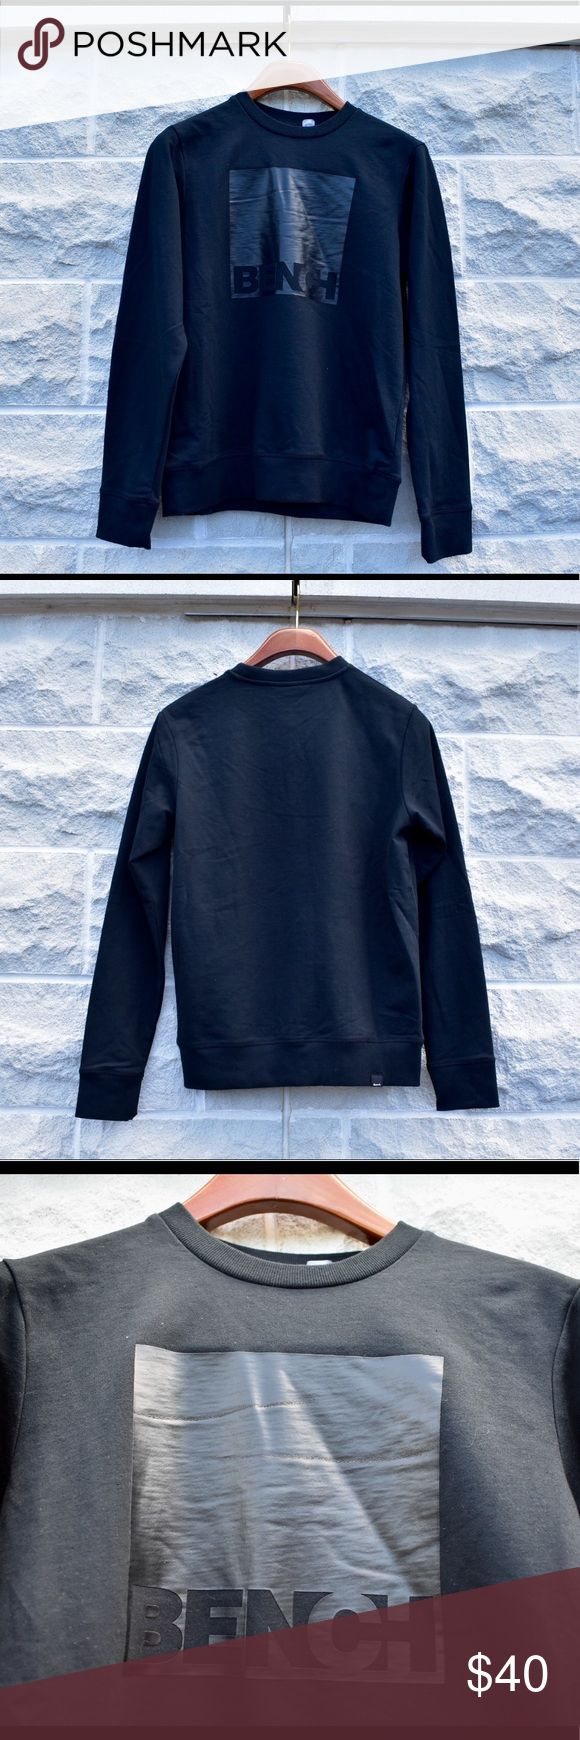 🔥 Black on Black Bench Logo Crew Neck Sweater 🔥 🔥 Black on Black Bench Logo Crew Neck Sweater 🔥 absolute flame piece of gear, with this black on black Bench box logo crew neck sweater a nice essential staple for your wardrobe Bench Shirts Sweatshirts & Hoodies